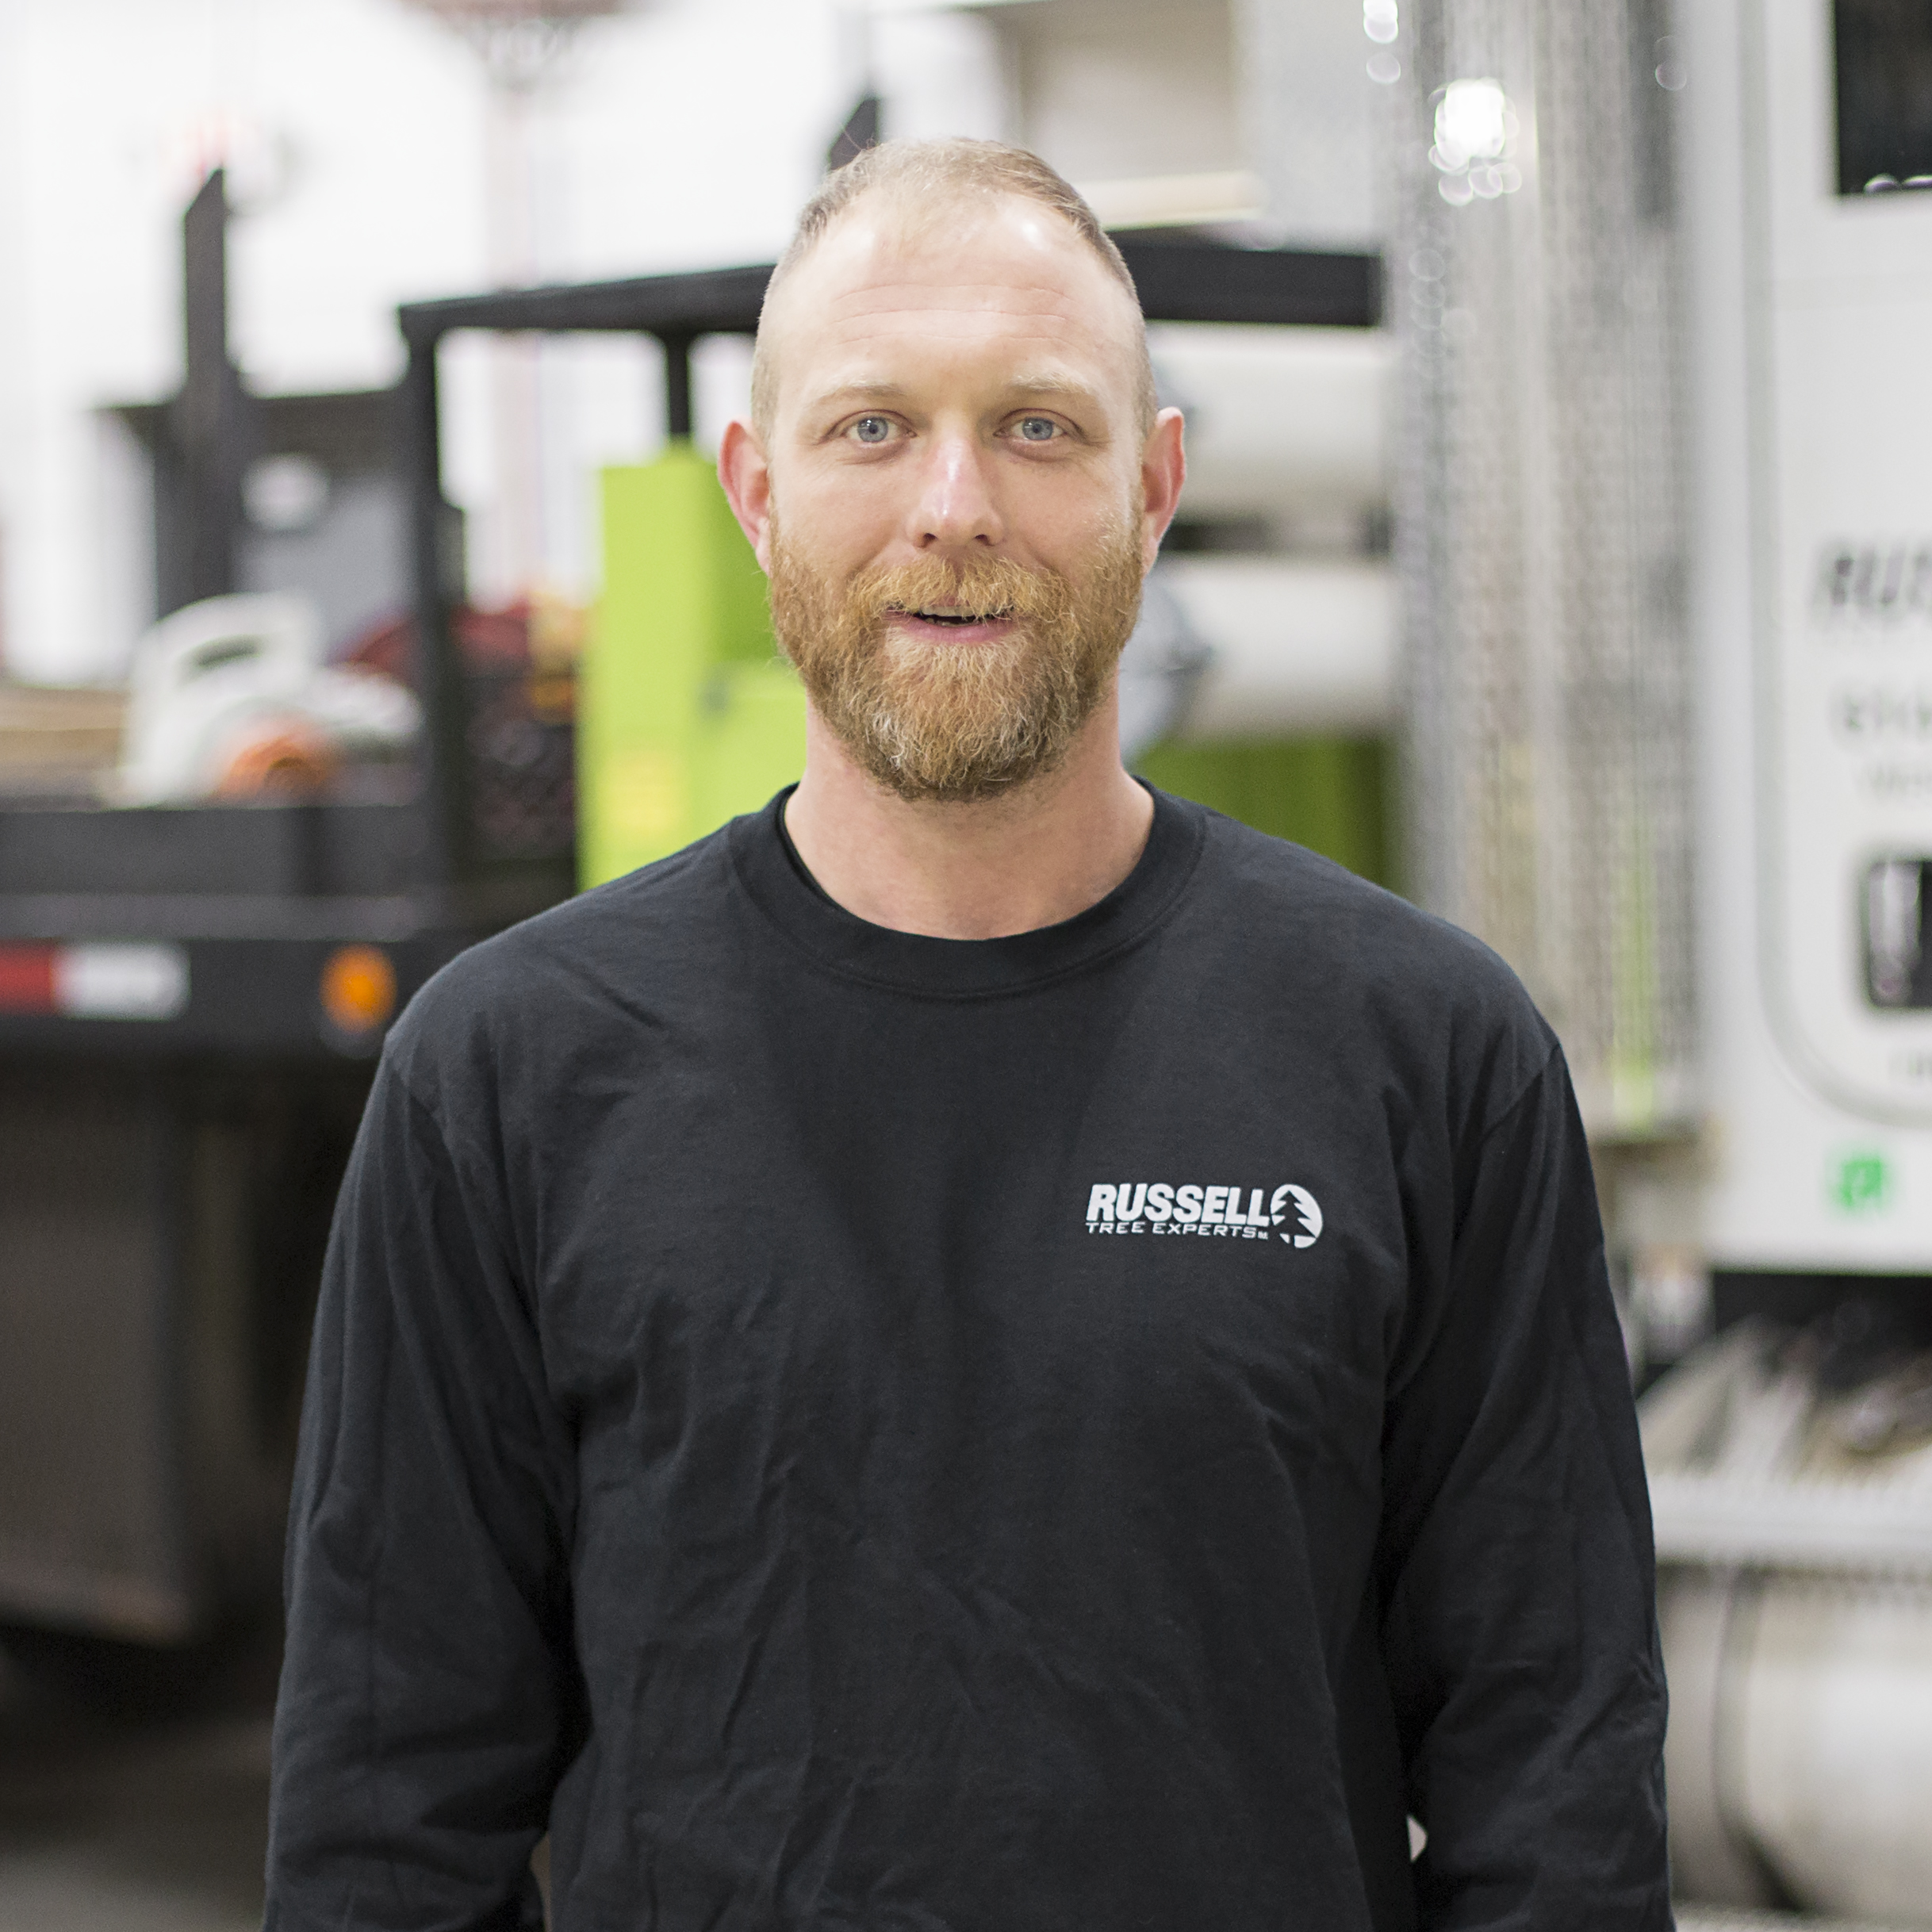 """Mike Ames - PRODUCTION ARBORISTMike has been a Certified Arborist since 2010 and has been in the tree care industry for almost 7 years. His favorite tree is the Quercus virginiana (Live Oak) for its big, fat low limbs. He likes tree work because he is """"part of an international community that does things others would deem impossible."""" His favorite climbing gear is the Singing Tree Rope Wrench and the GRCS friction device which provides climbers a safe and efficient way to dismantle a tree.▶ ISA Certified Arborist® OH-6230A▶ TCIA Certified Treecare Safety Professional (CTSP)▶ EHAP Certified▶ CPR & First Aid"""